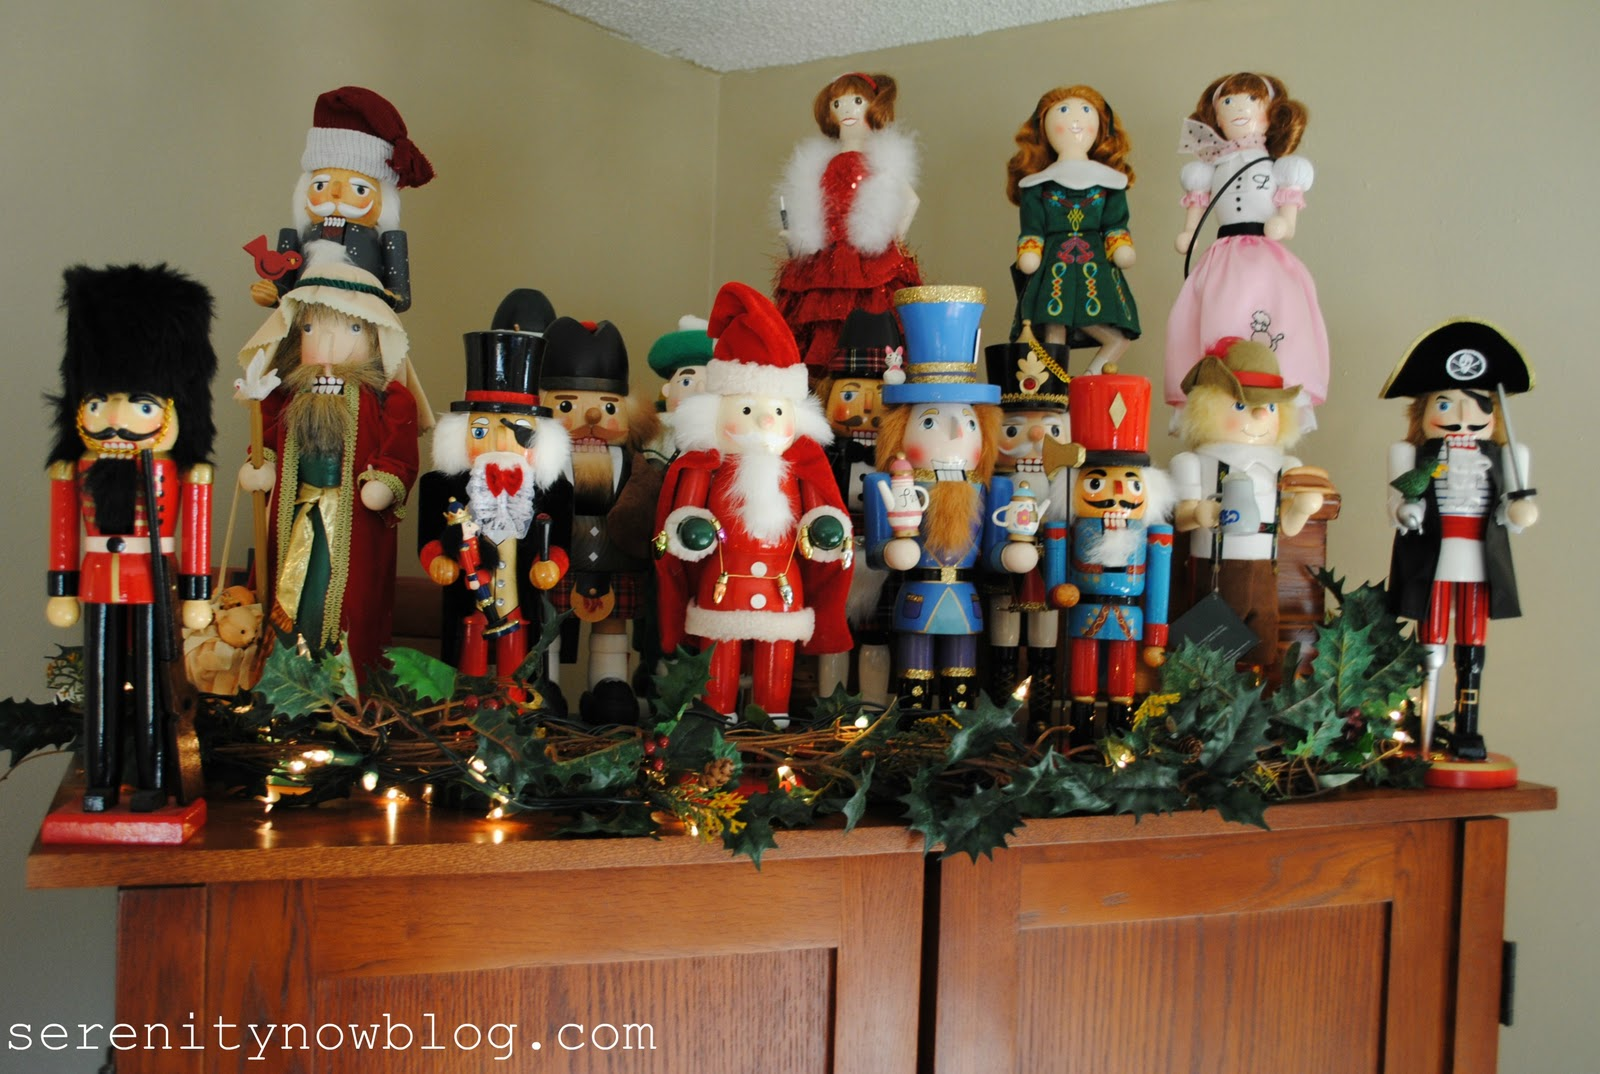 christmasdecorationsnutcrackersserenitynowblog2 e39b47d9d29c4ea72f0e794520d88a3d - Nutcracker Christmas Decorations